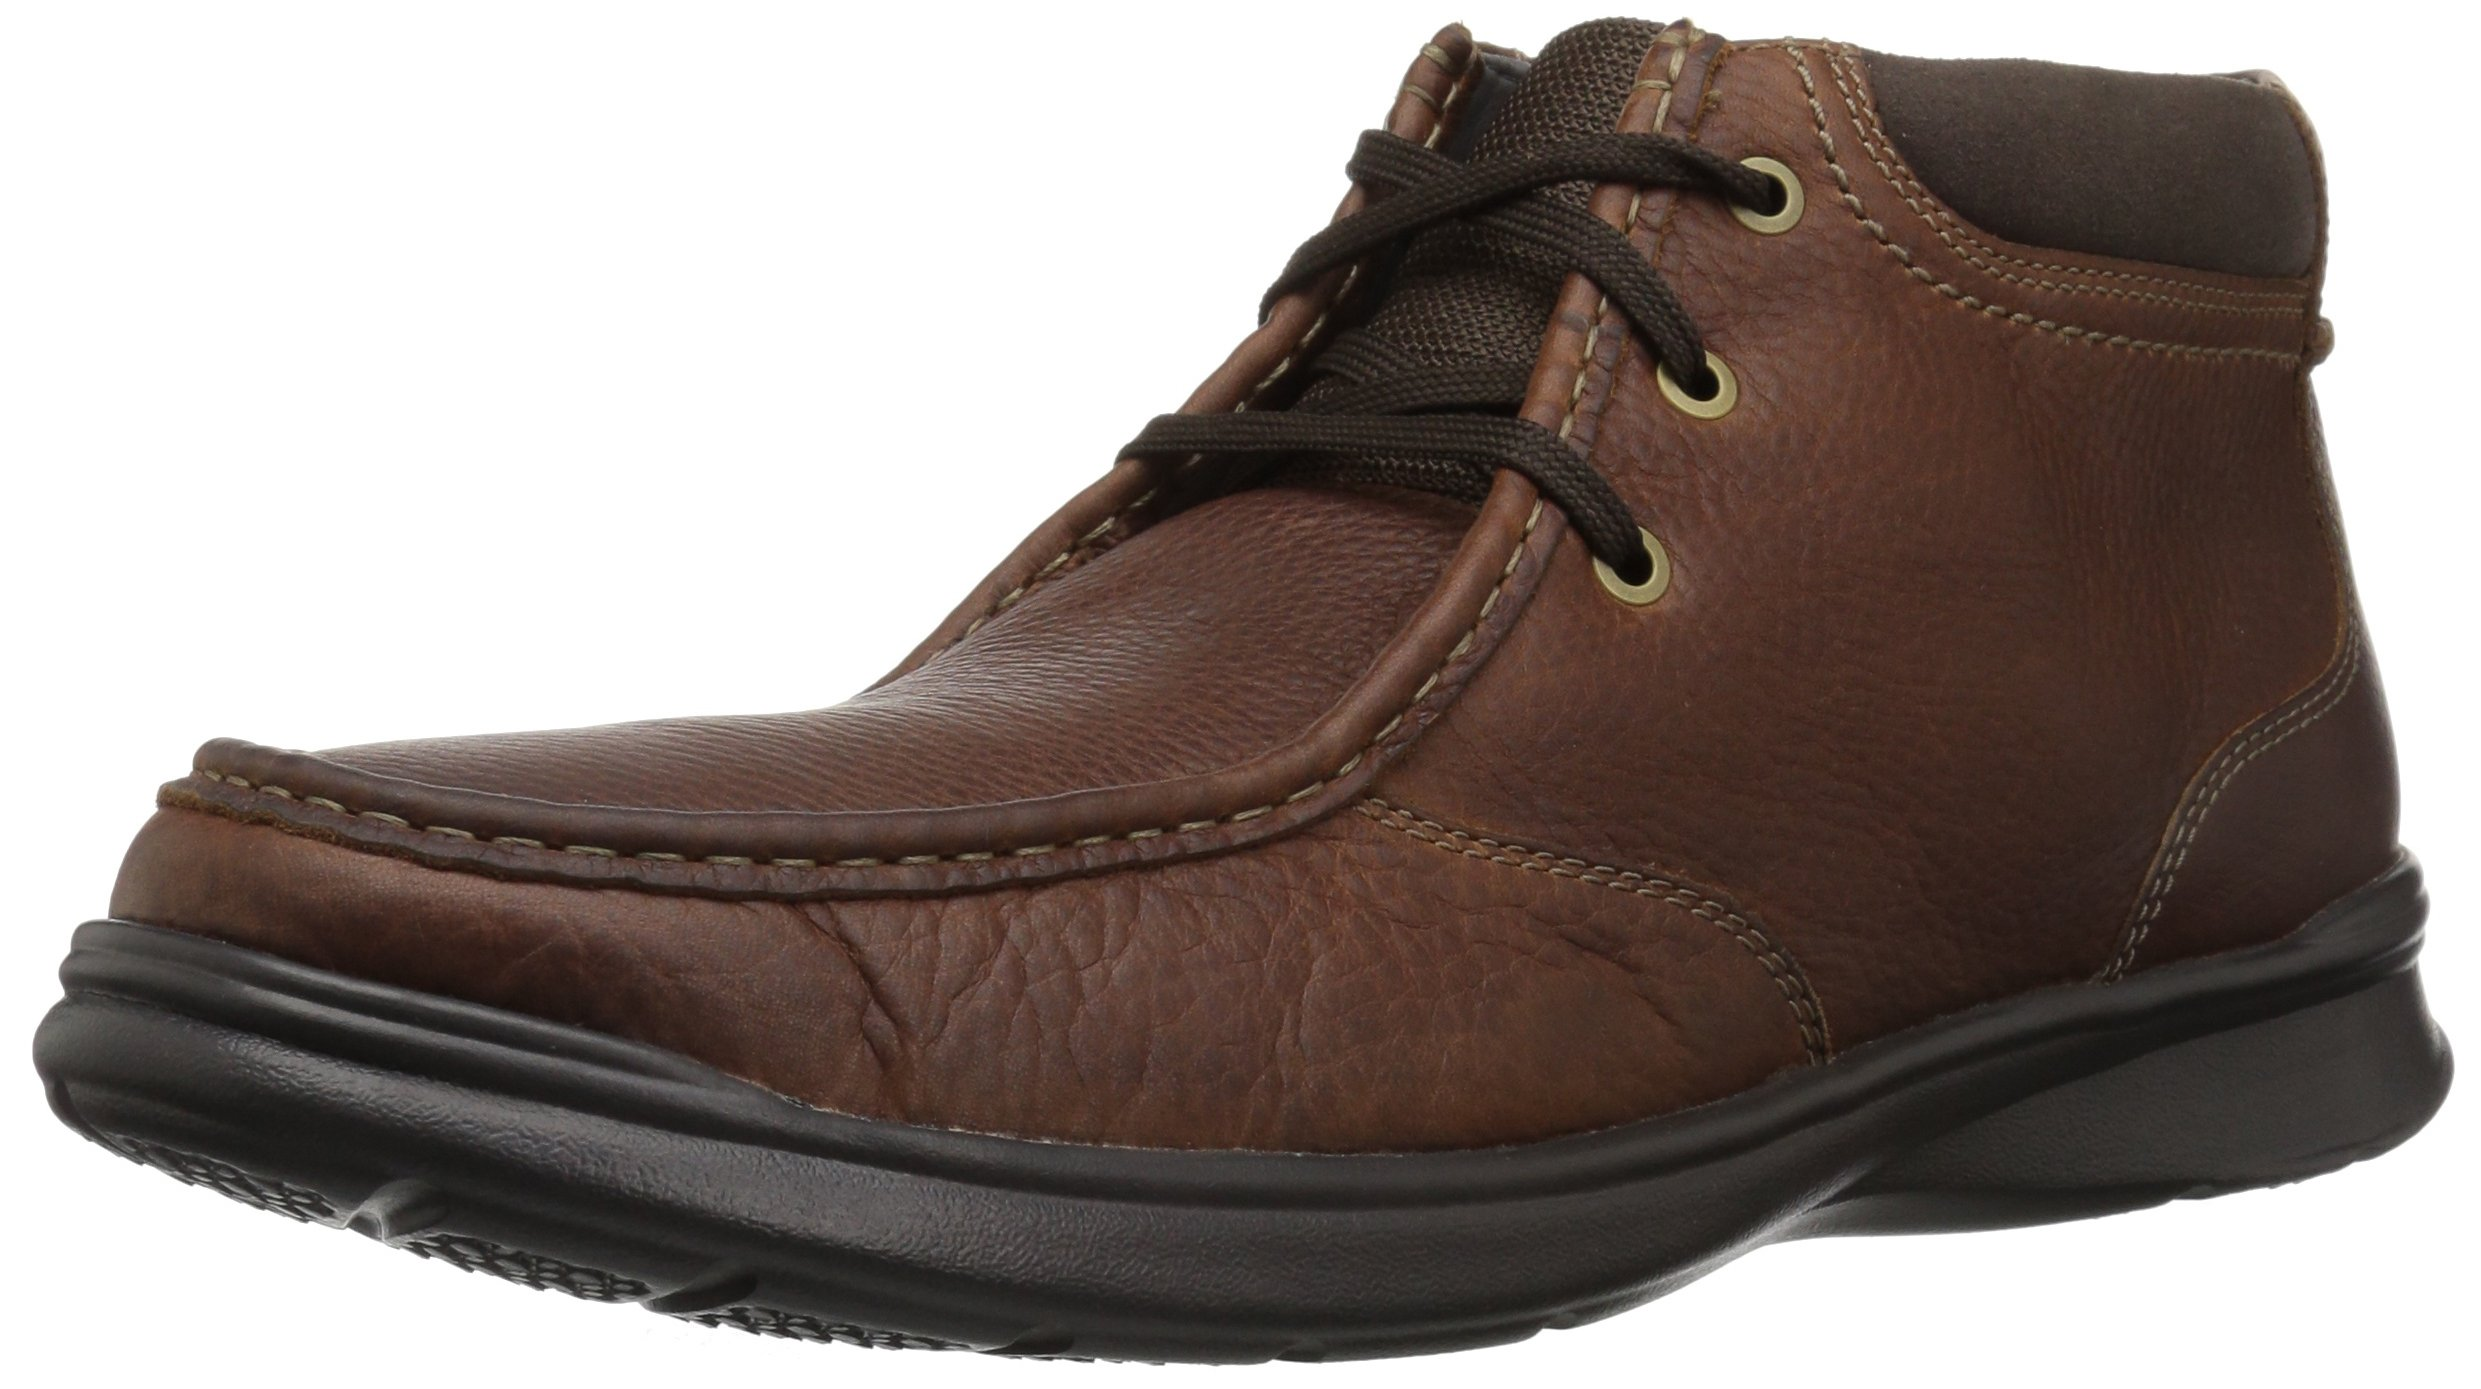 CLARKS Men's Cotrell Top Fashion Boot, Tobacco Leather, 085 M US